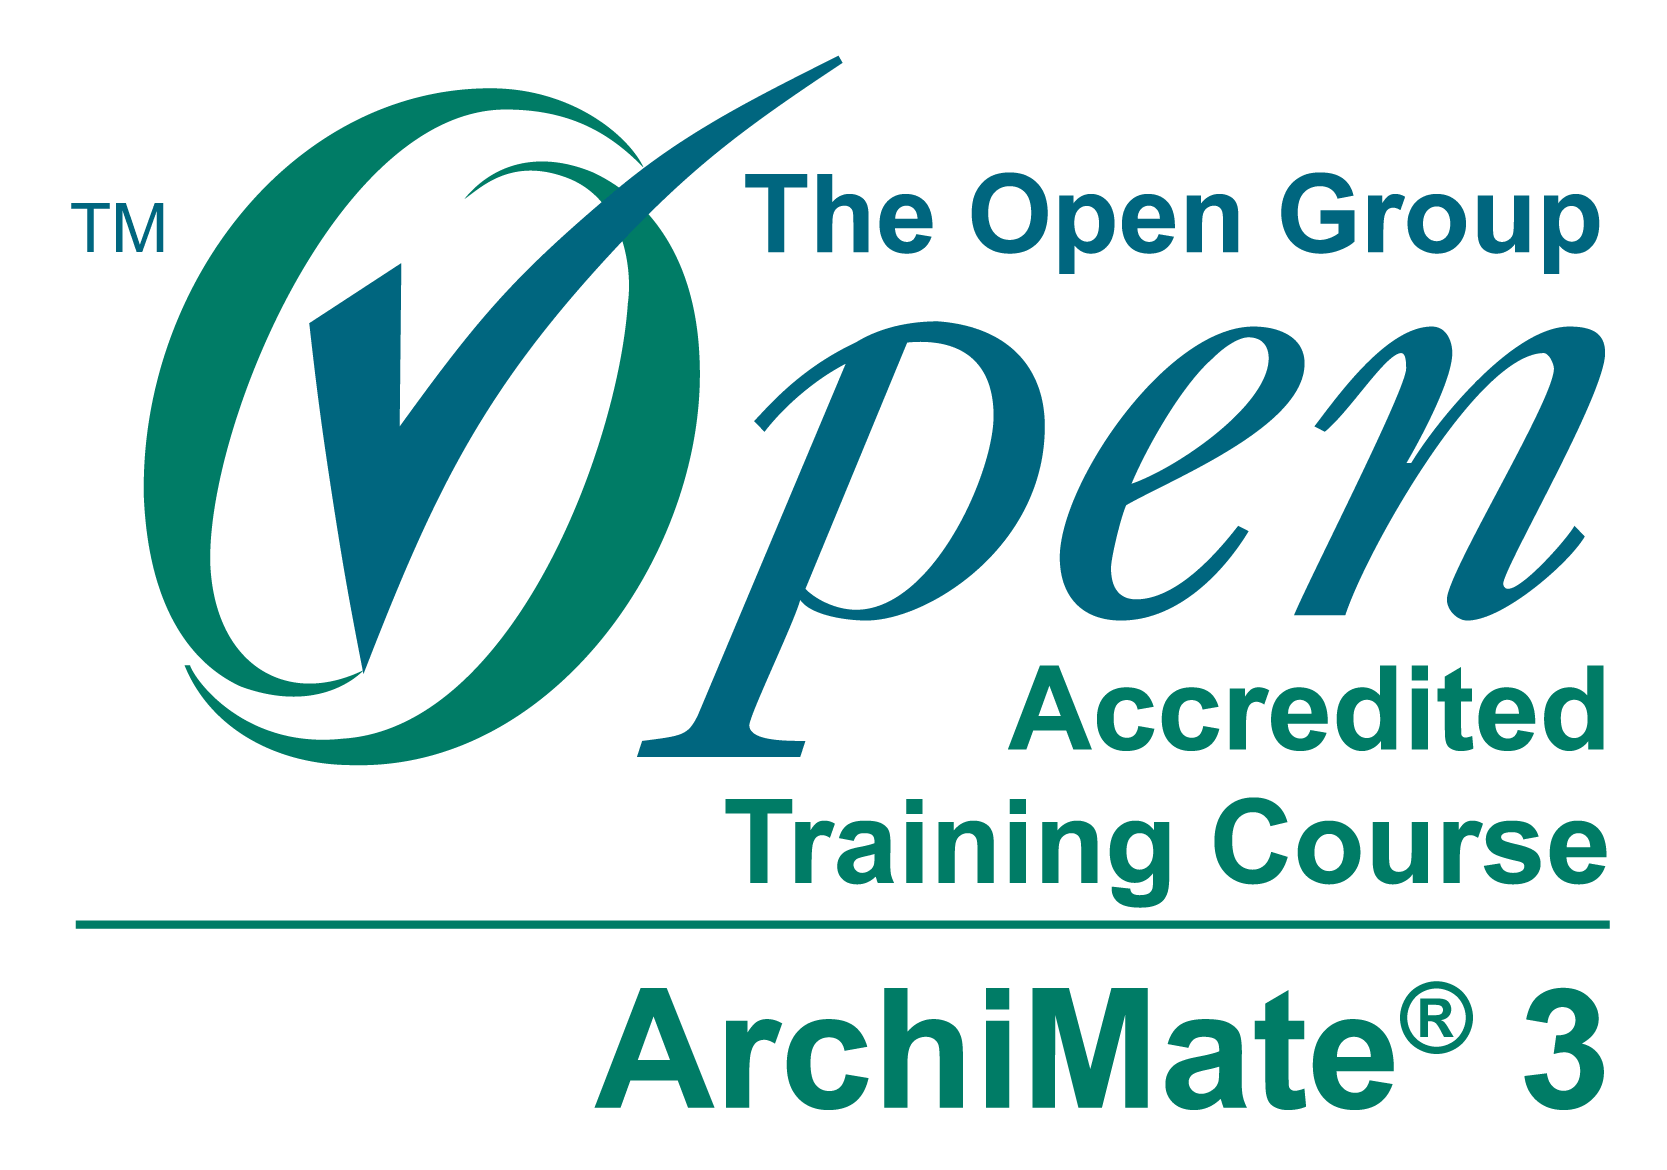 ArchiMate® 3.0 training is accredited by The Open Group®.